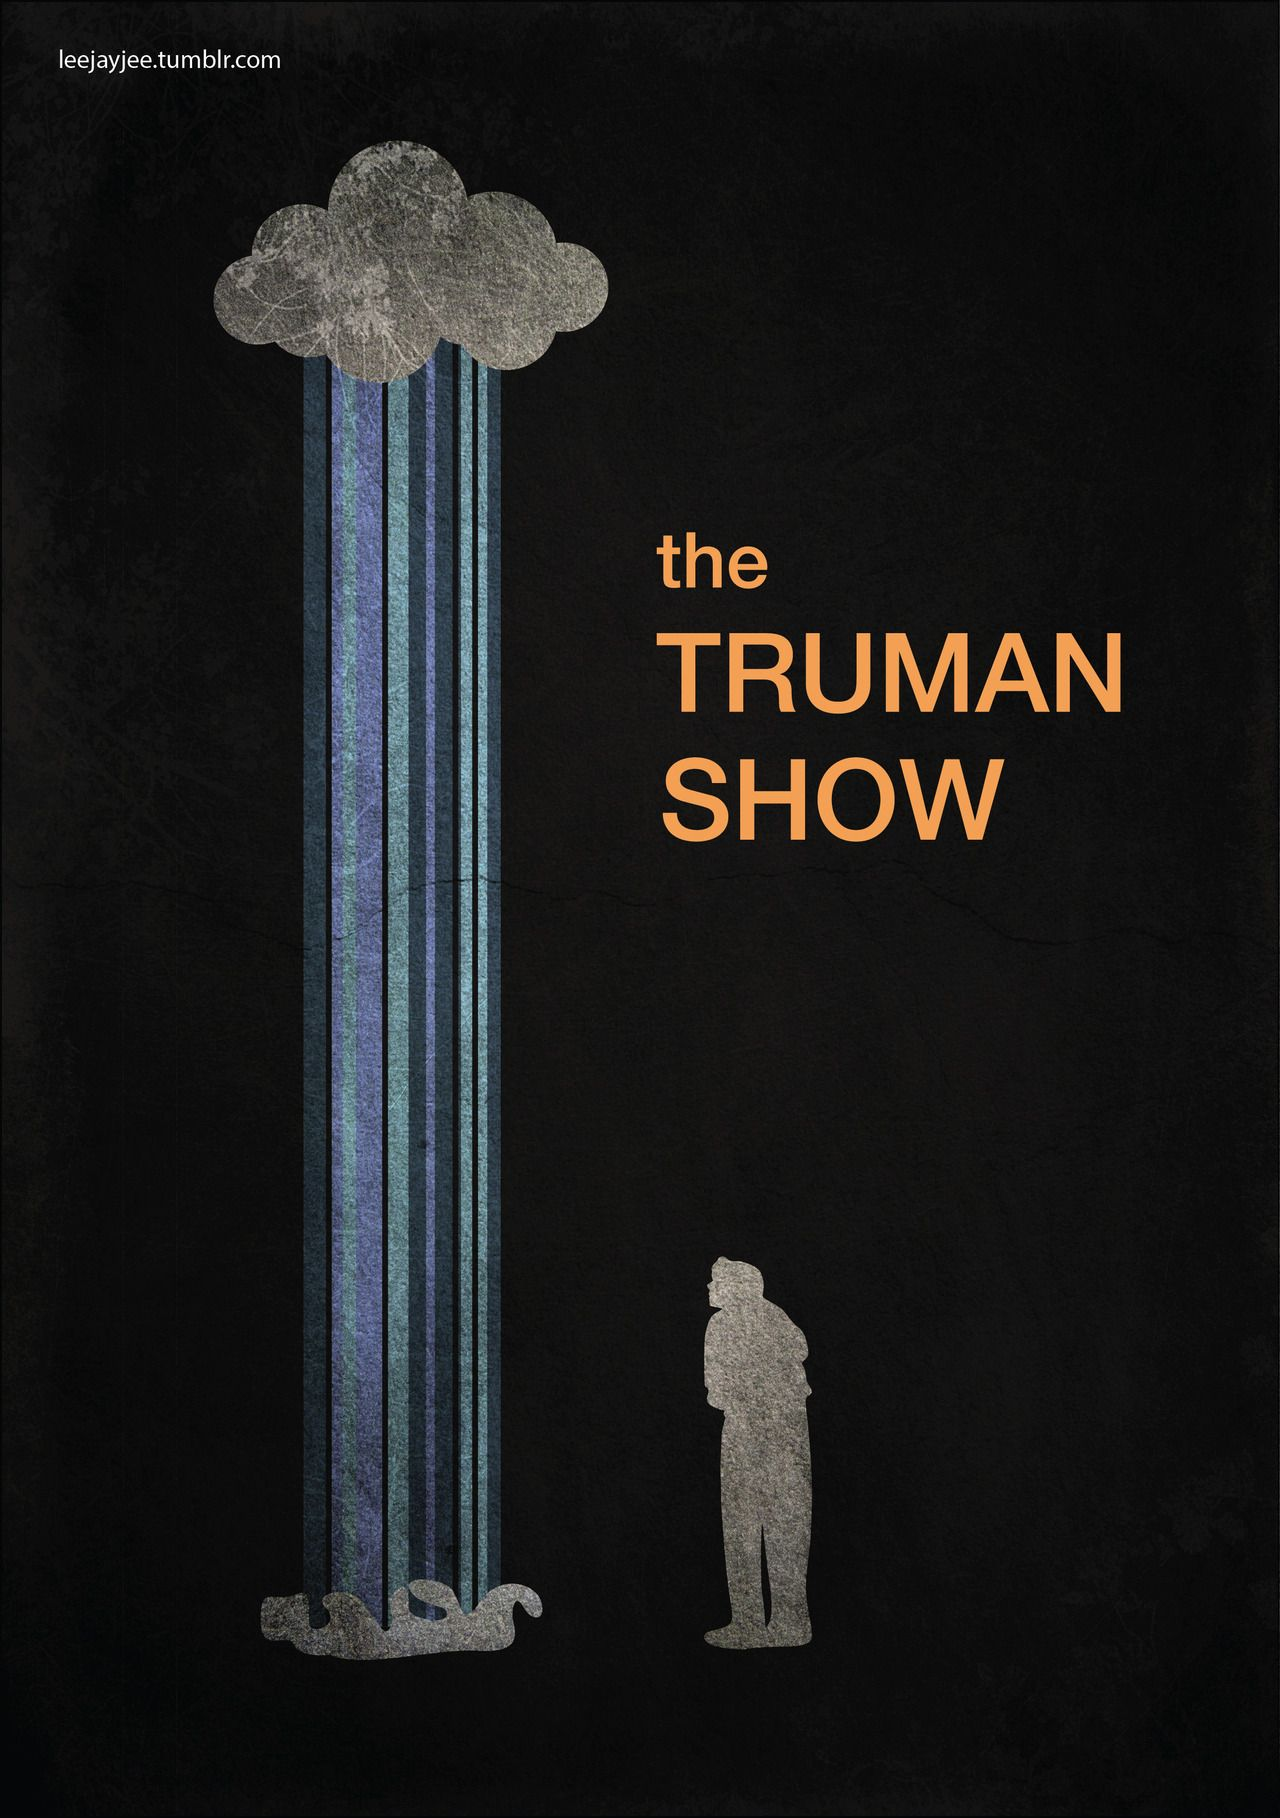 best ideas about the truman show film posters 17 best ideas about the truman show film posters movie posters and minimal movie posters